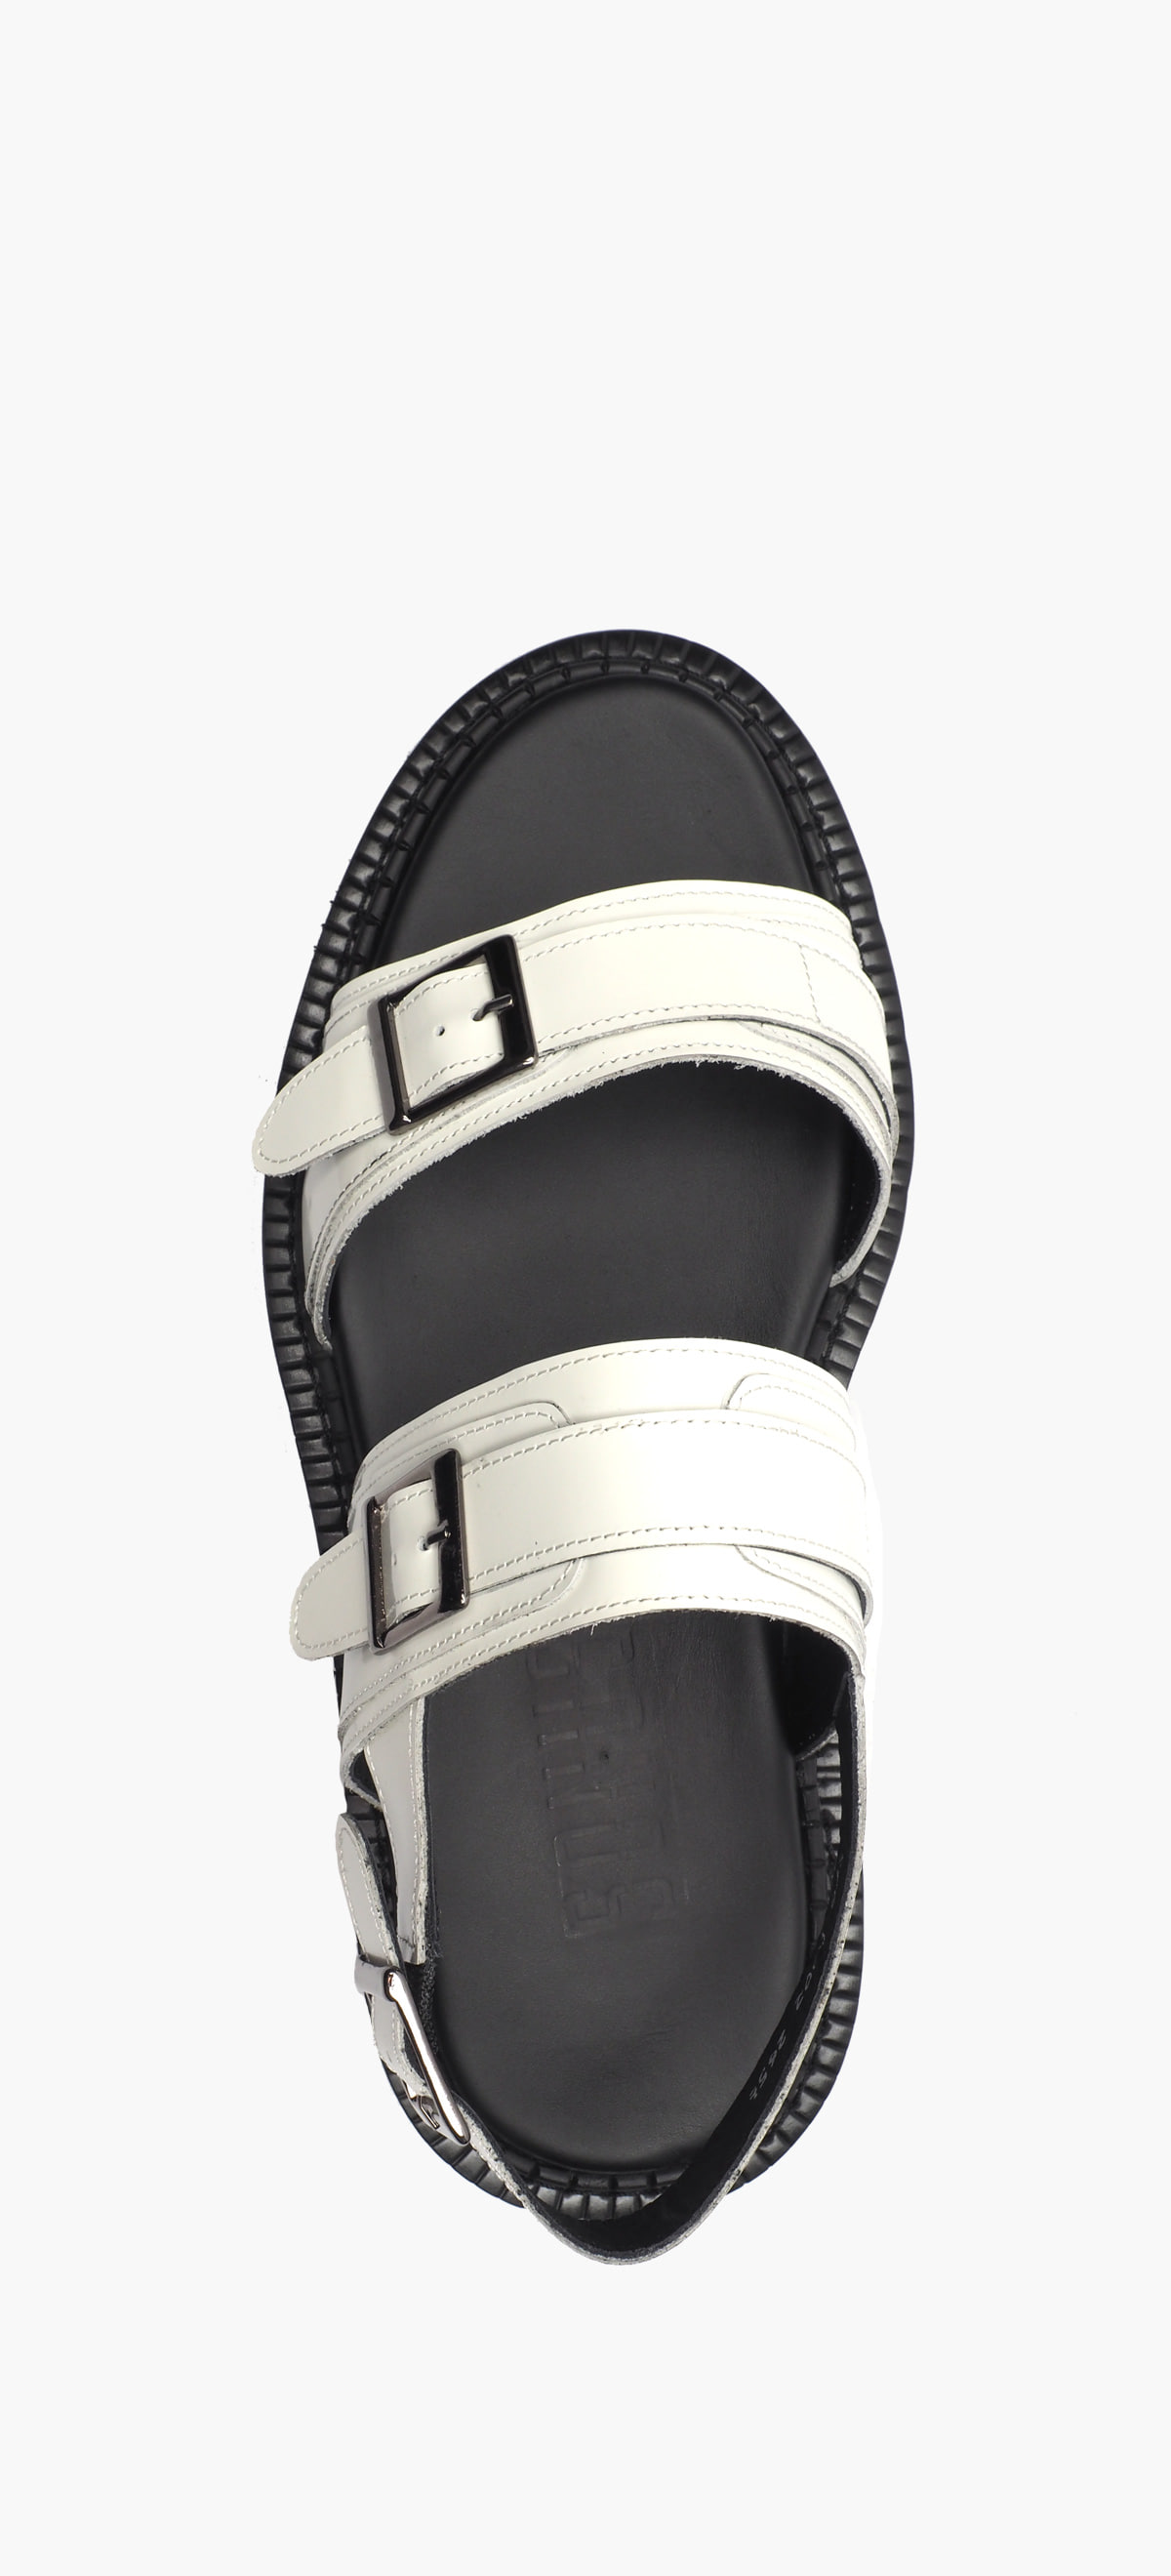 Sandal 0002-02 CR. White Box